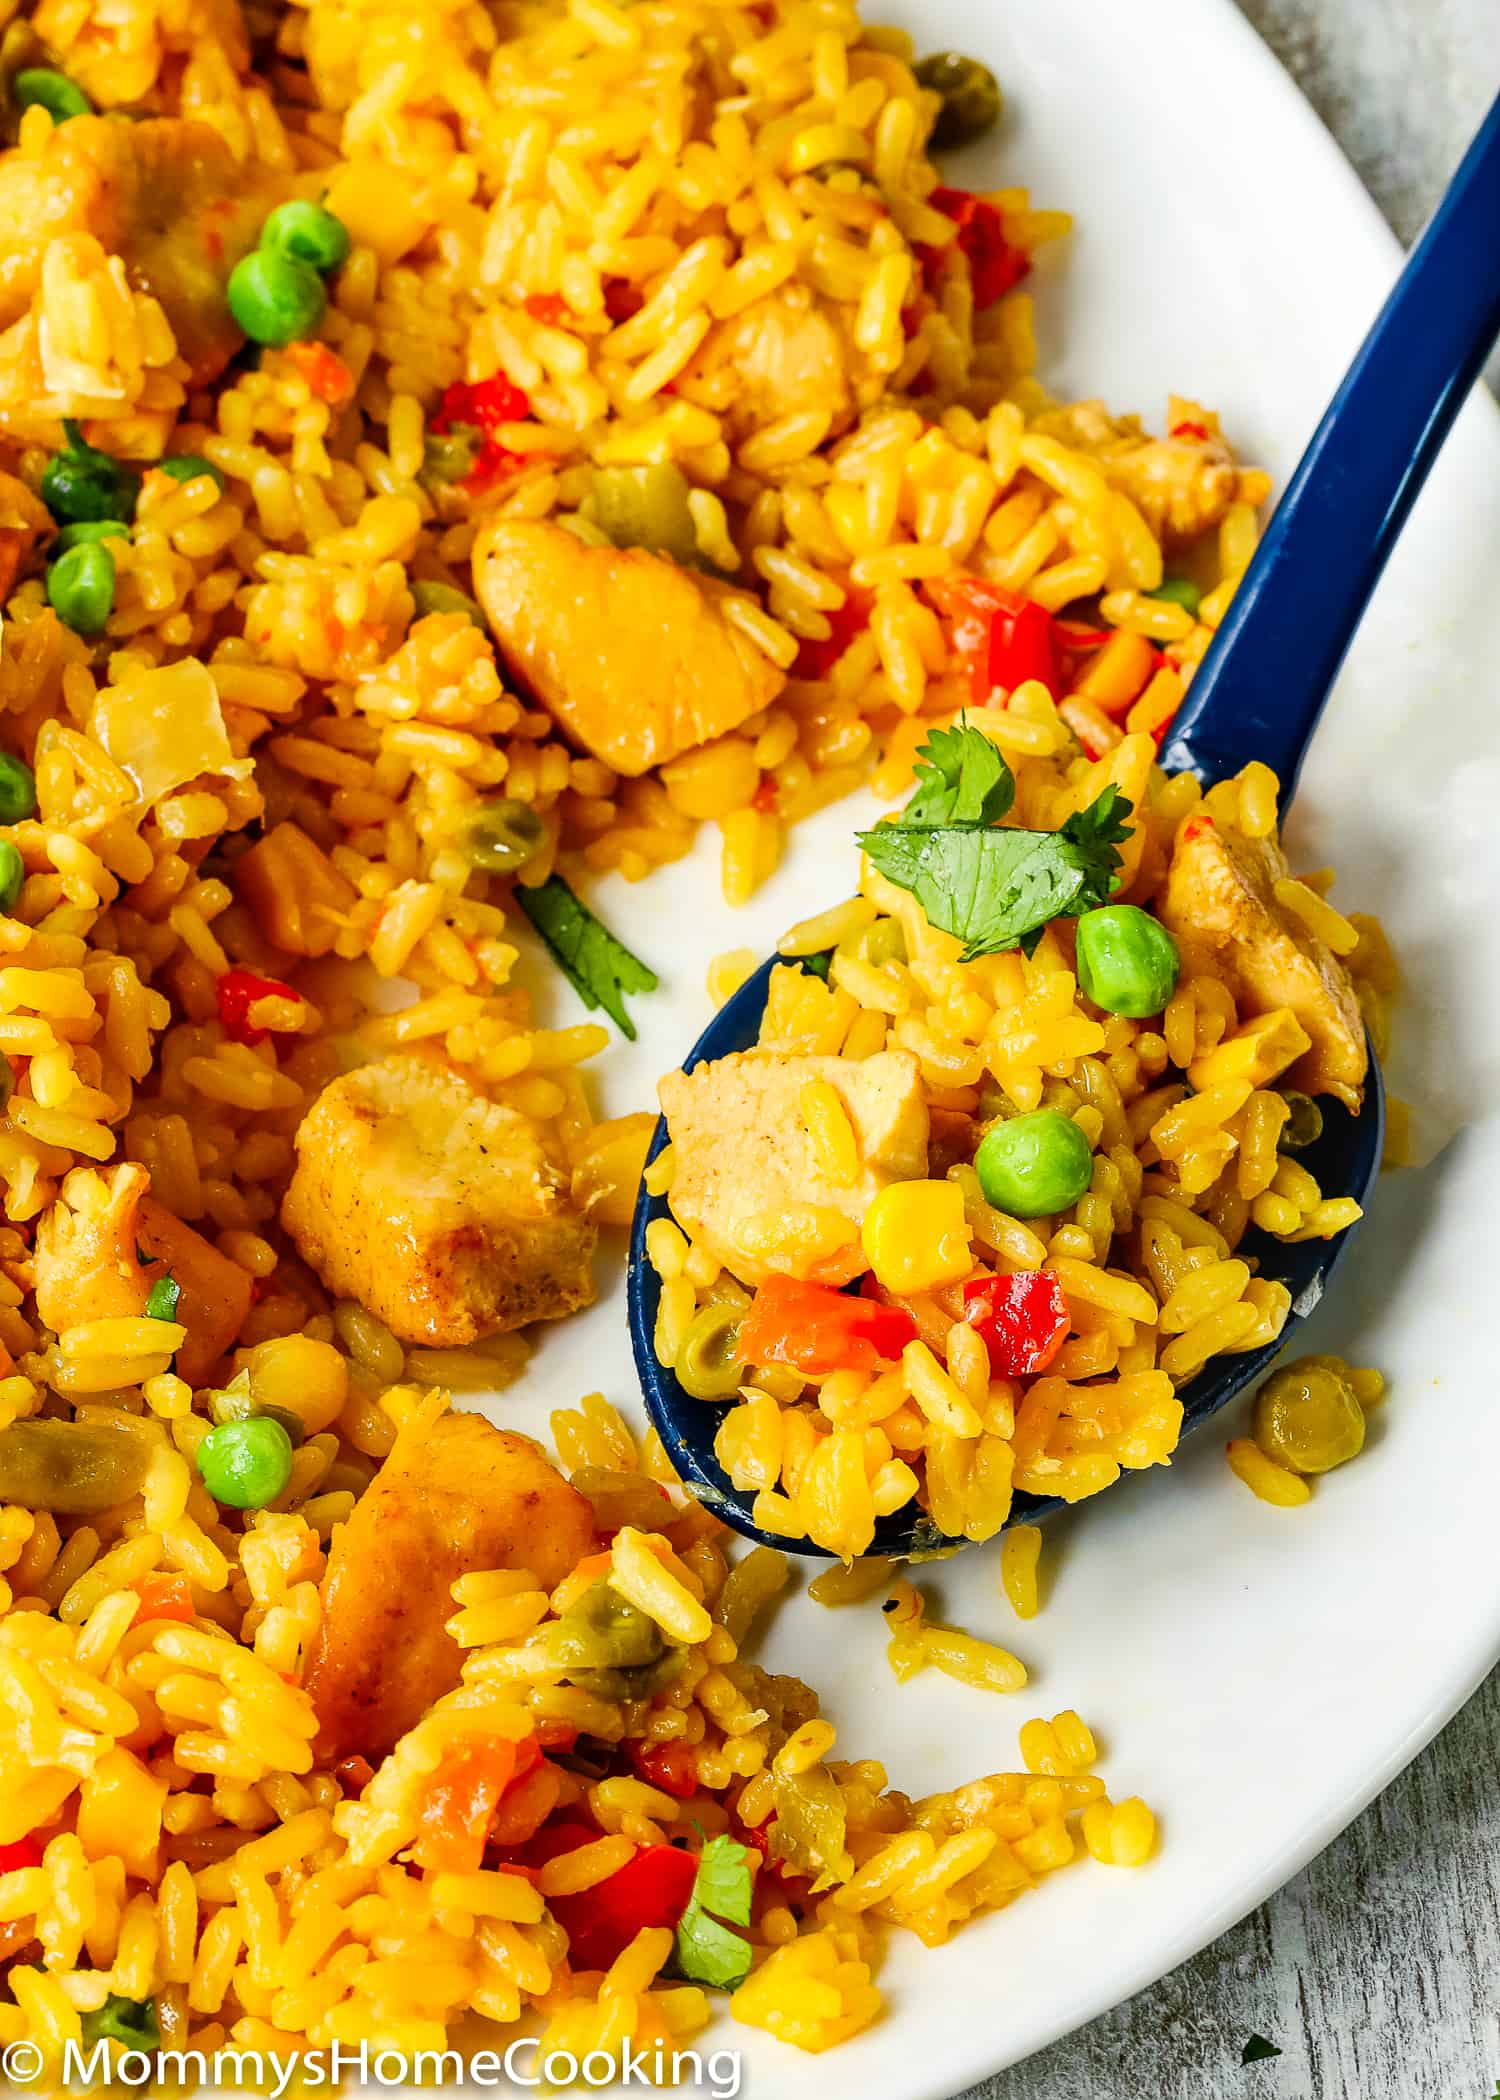 This Easy Instant Pot Arroz con Pollo recipe is ridiculously easy to make and unbelievably delicious! It has protein, vegetables, and grains cooked together in one pot in about 30 minutes. This one is definitely one to keep in your rotation. https://mommyshomecooking.com